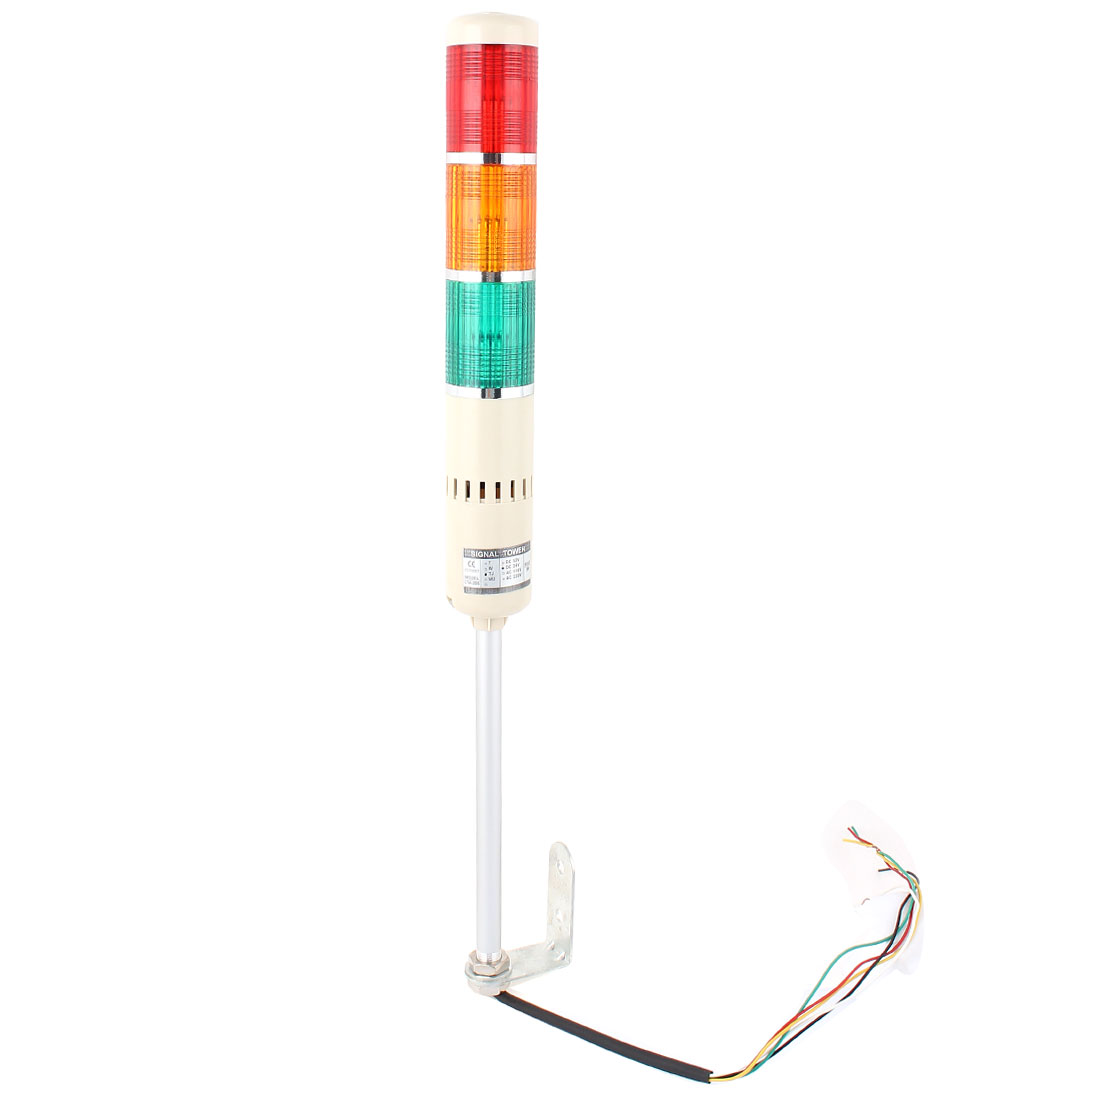 DC 24V Red Green Yellow Buzzer Sound Warning Stack Lamp Alarm System Indicator Industrial Signal Tower Light